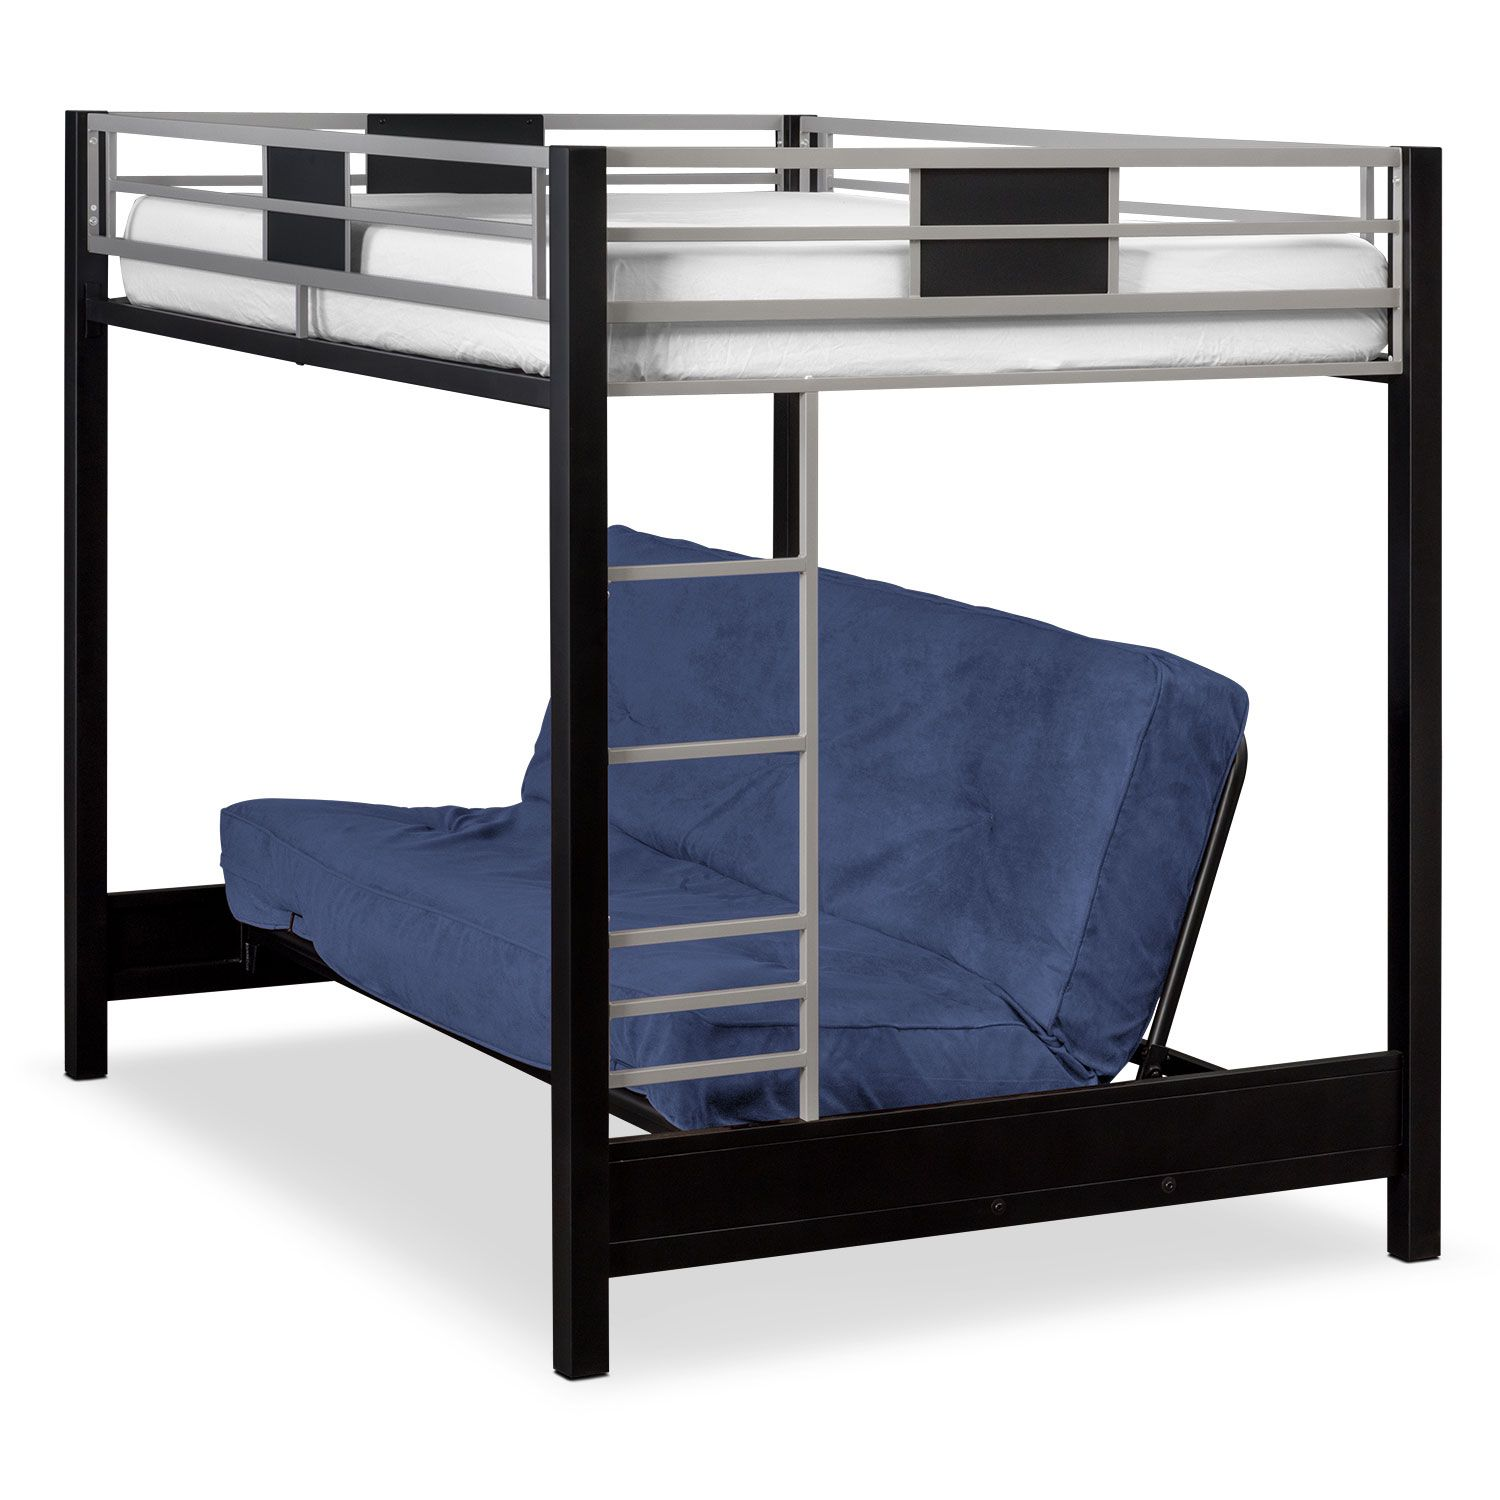 bedroom furniture   samba full futon bunk bed with blue futon mattress bedroom furniture   samba full futon bunk bed with blue futon      rh   pinterest